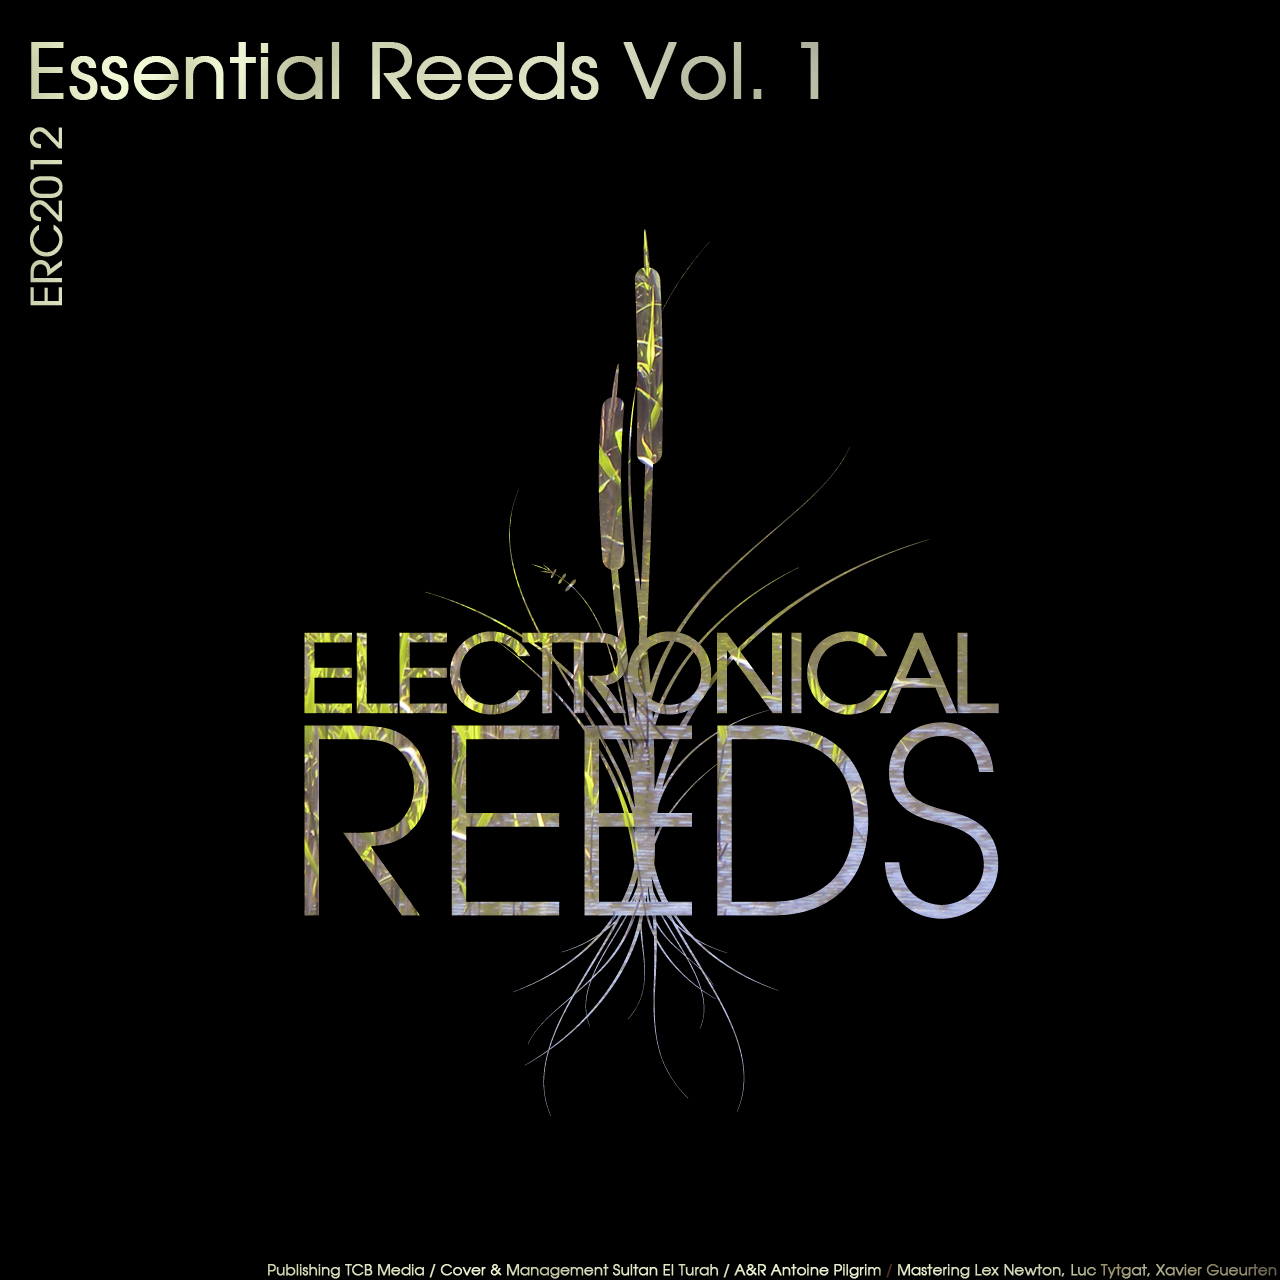 ERC2012 - Essential Reeds Vol. 1 - Electronical Reeds